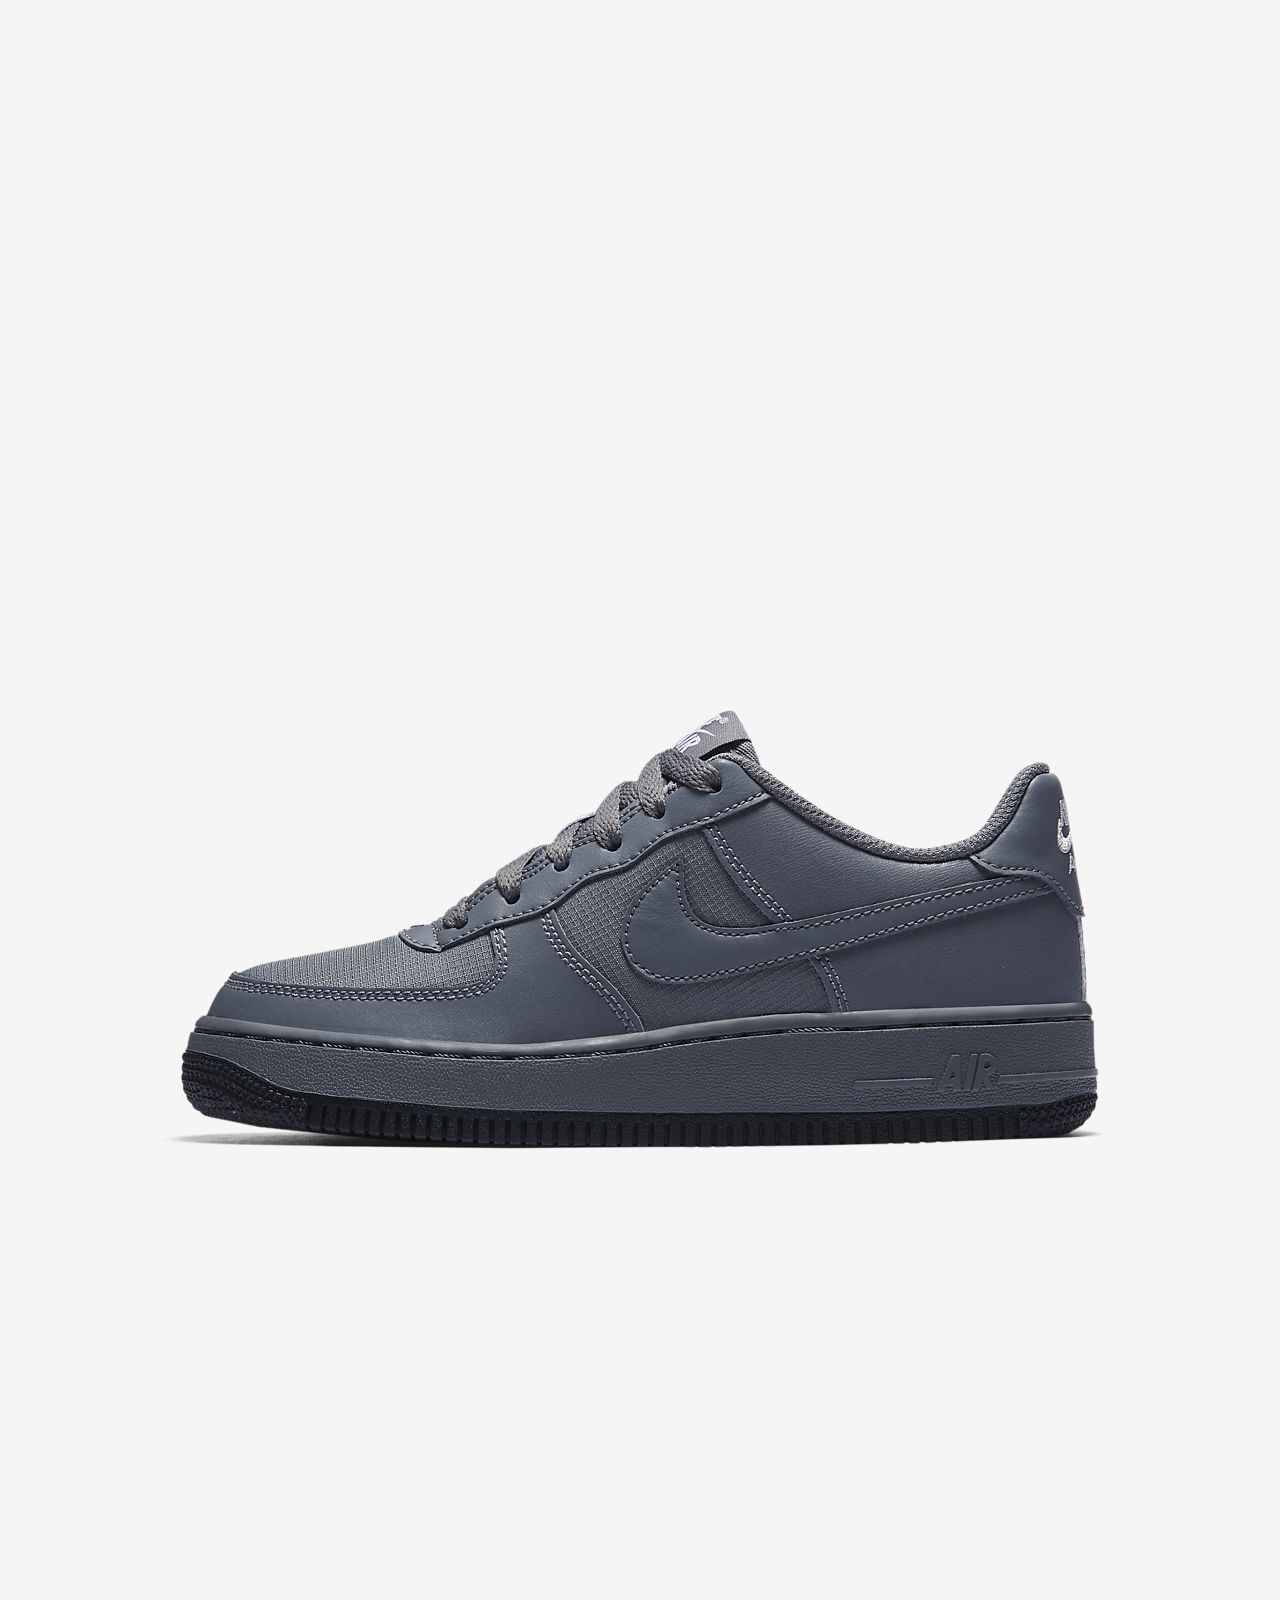 air force 1 black swoosh nz